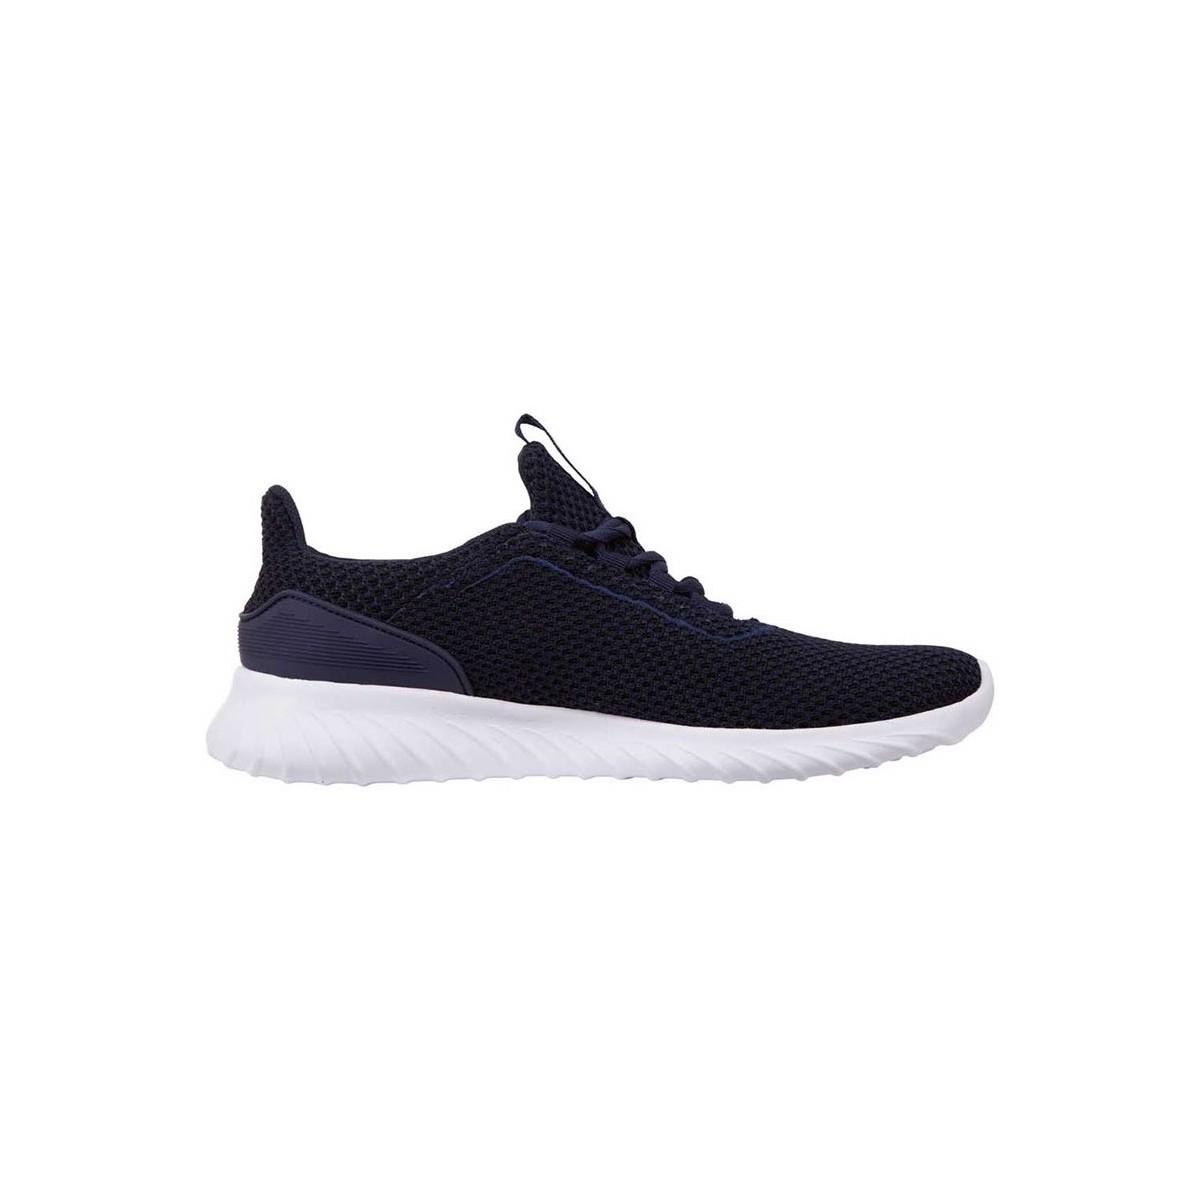 971bce6a2bc Kappa Deft Men's Shoes (trainers) In Multicolour in Blue for Men - Lyst